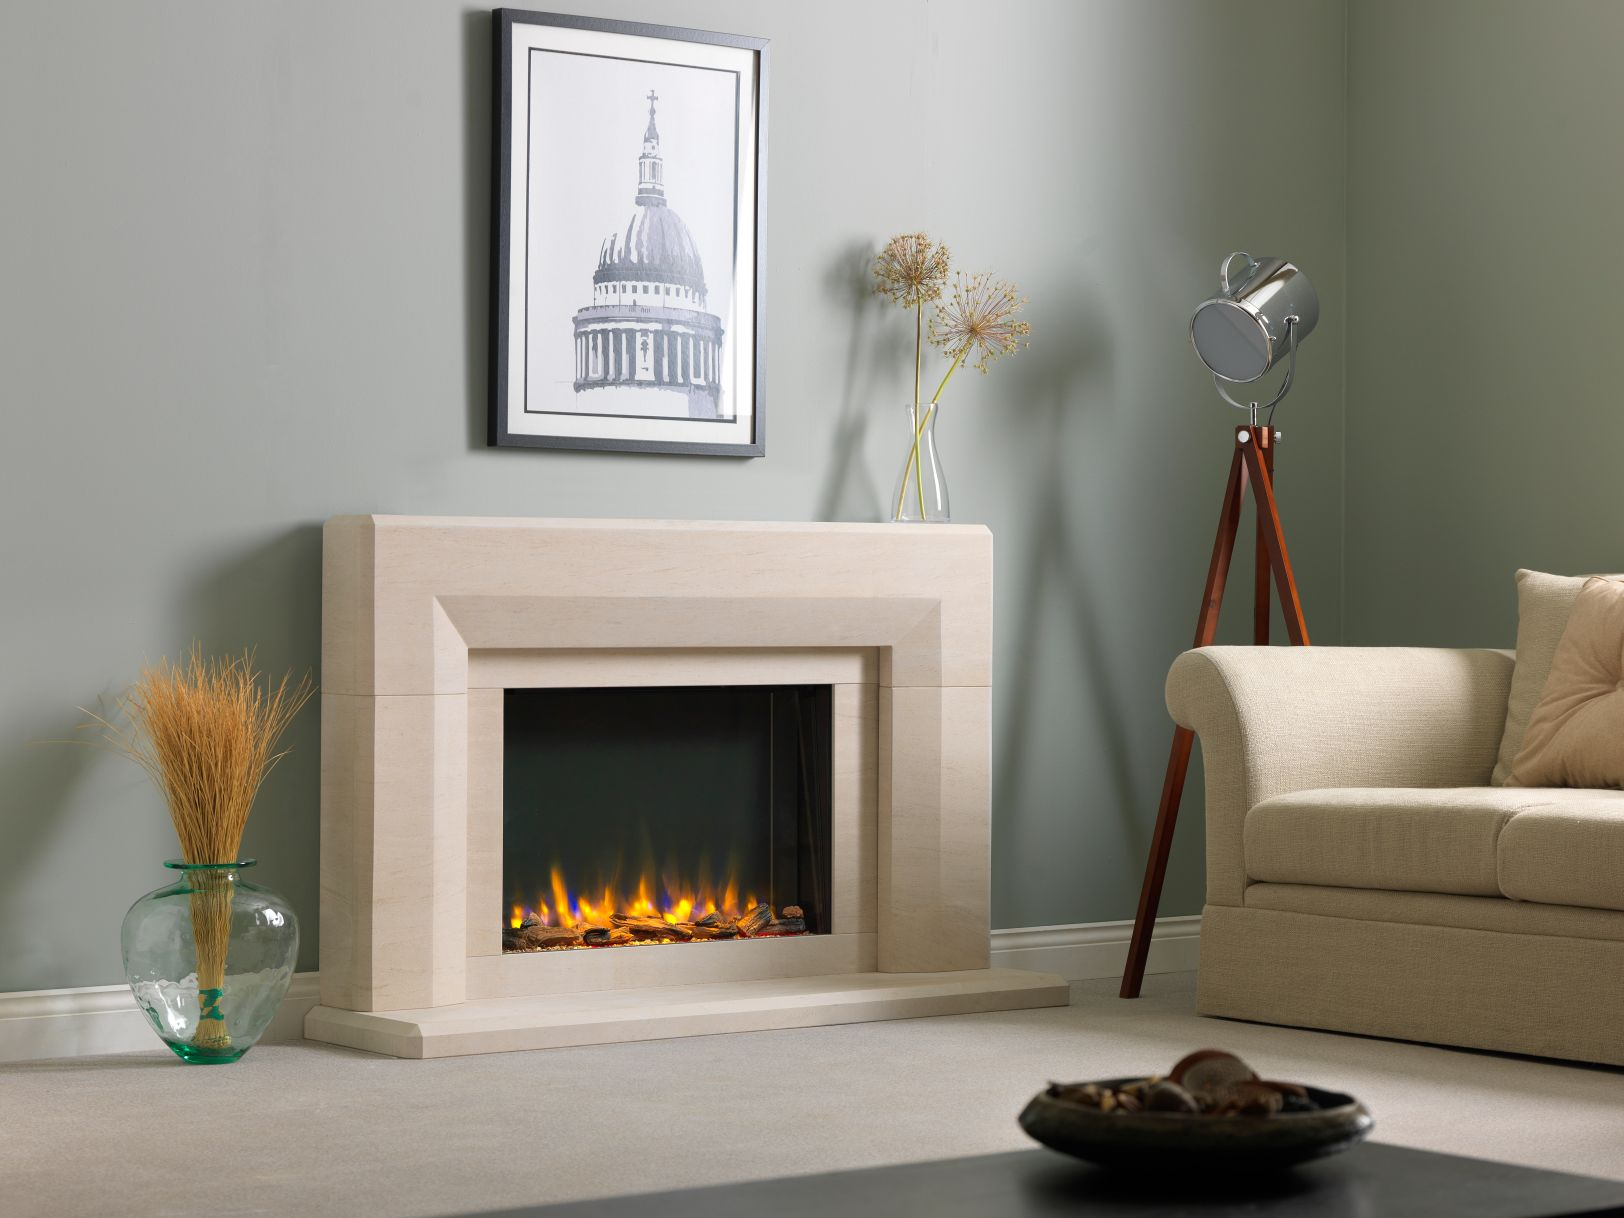 Infinity 780 Electric Fireplace Suite in Edgemond Electric Surround